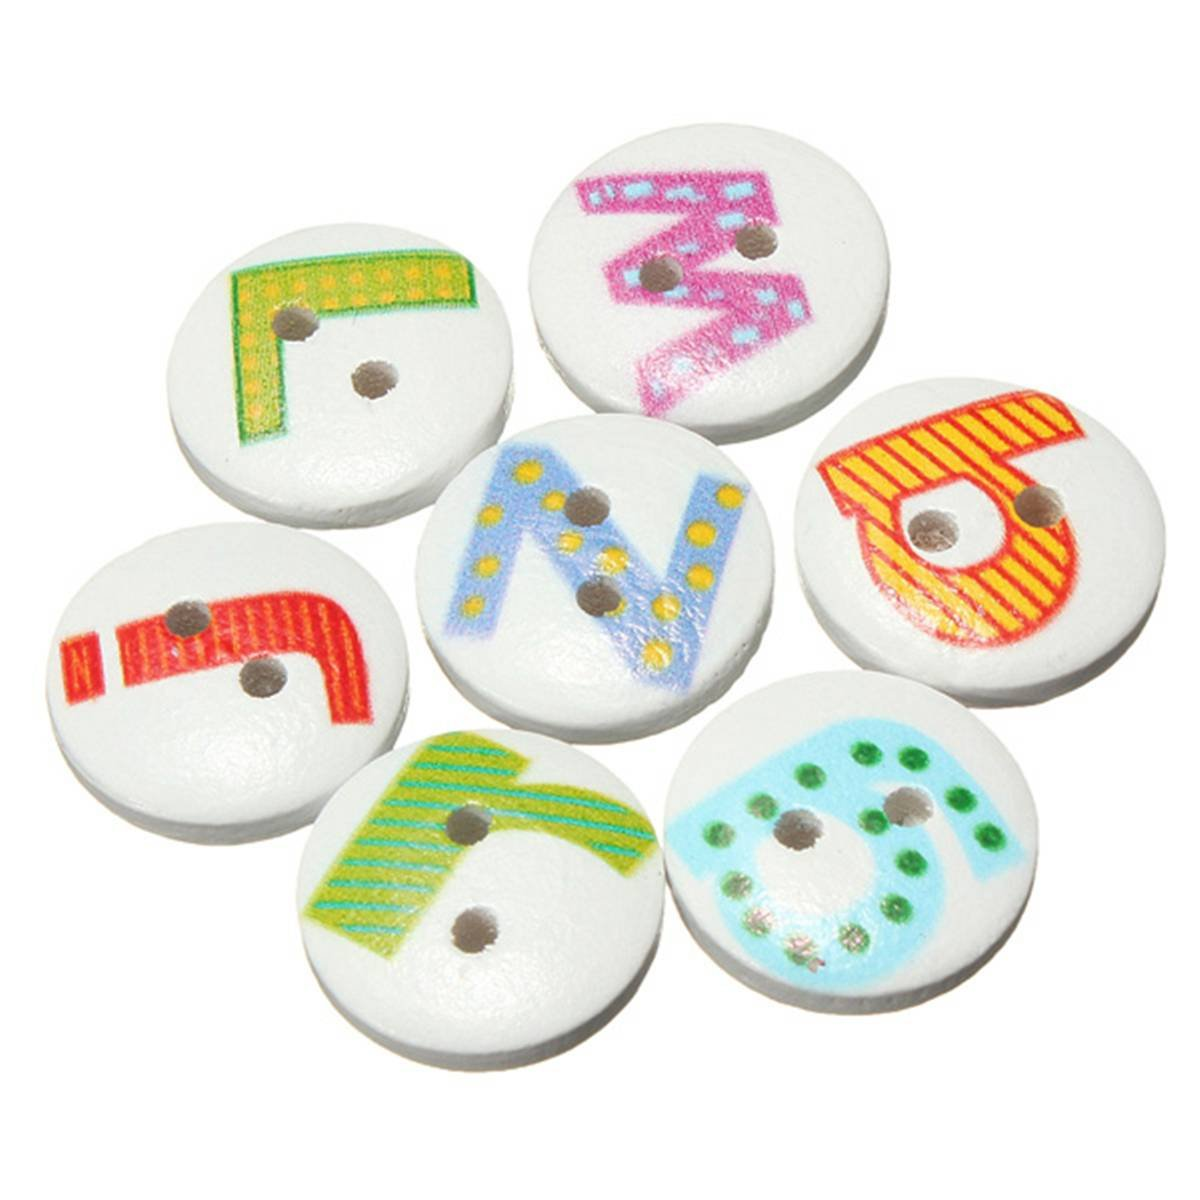 100Pcs Mixed Painted Letter Alphabet Wooden Sewing Button Scrapbooking